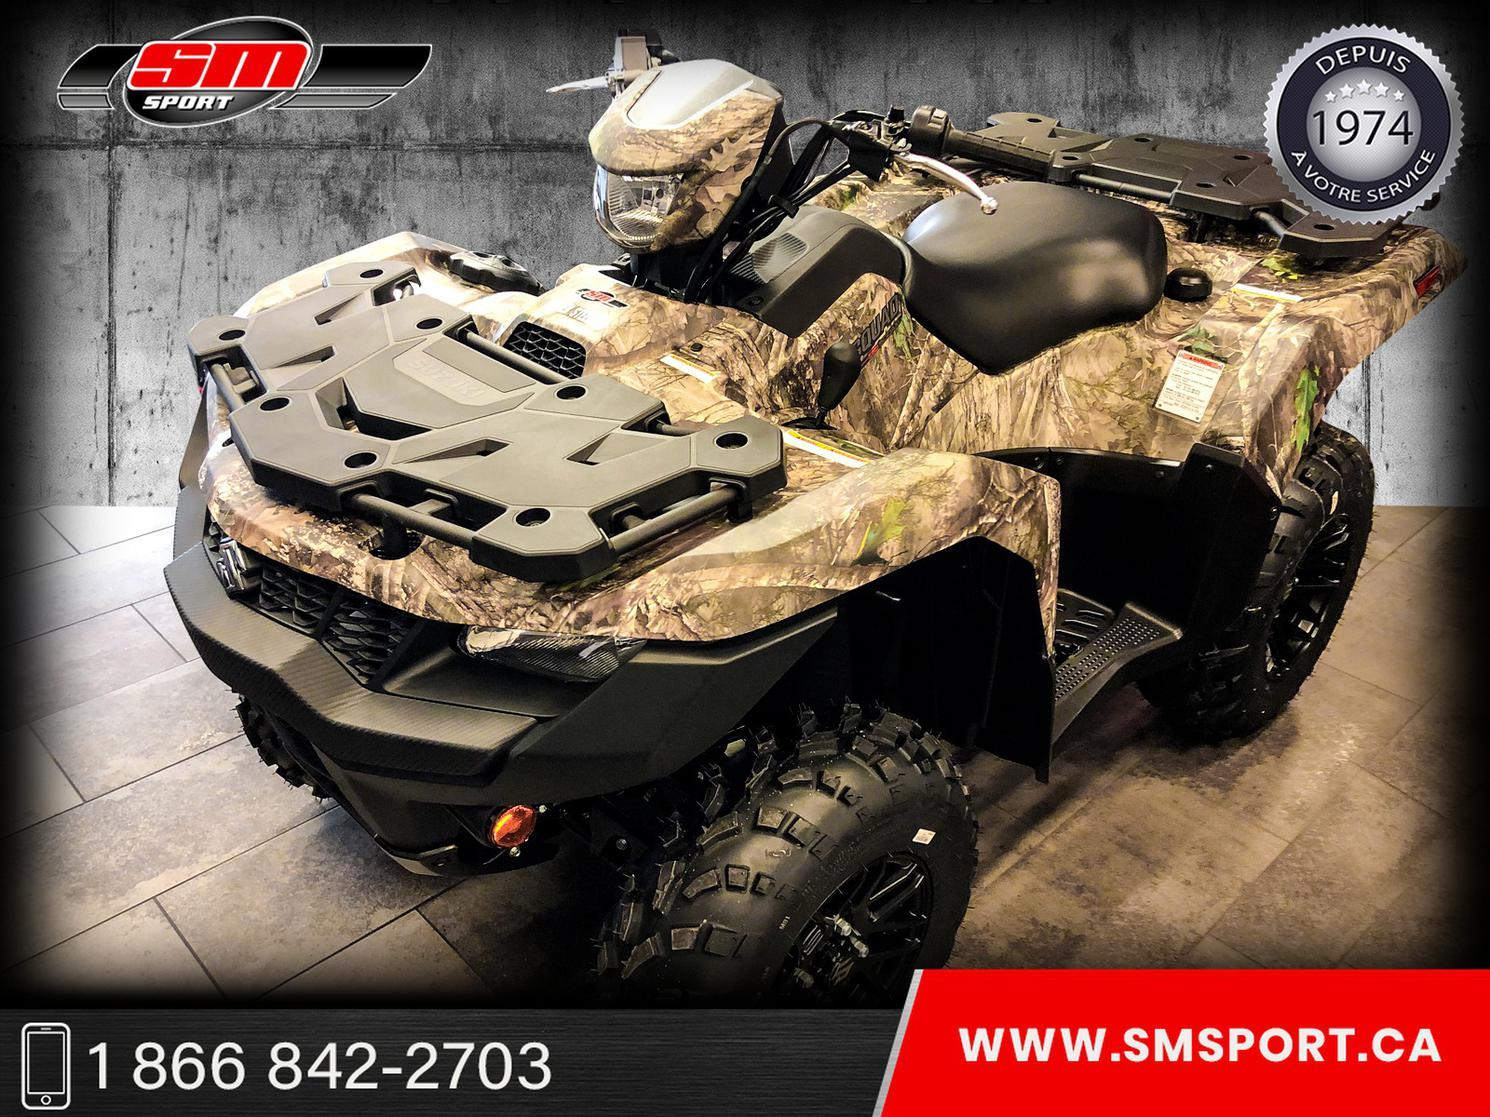 2021 Suzuki LTA 500 KINGQUAD XPZ - NEUF DISPONIBLE EN STOCK